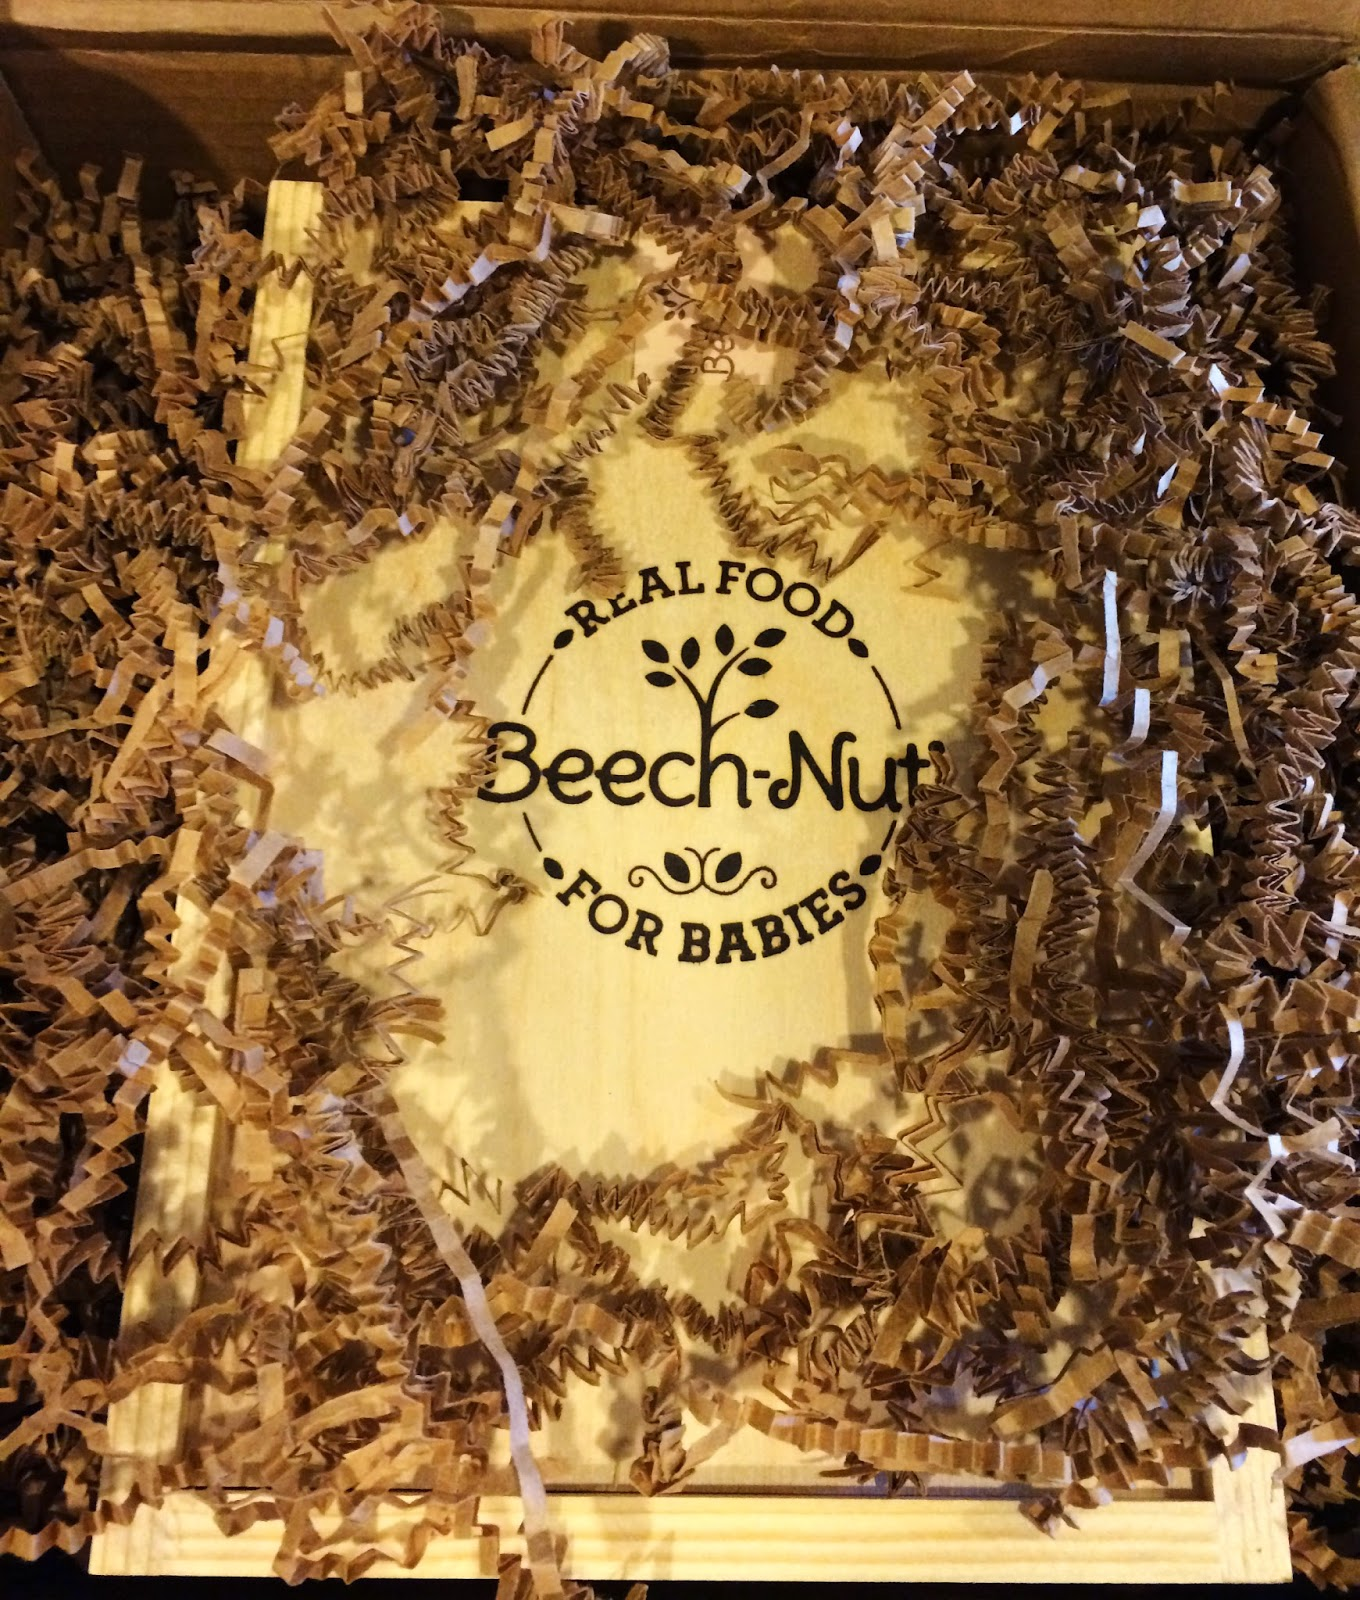 Beech-Nut isn't baby food. It's real food for babies! This company wins in every way- organic, helthy fruits/veggies and more all packaged nicely in quality materials. #organicbabyfood #toddlerfood #pickyeaters